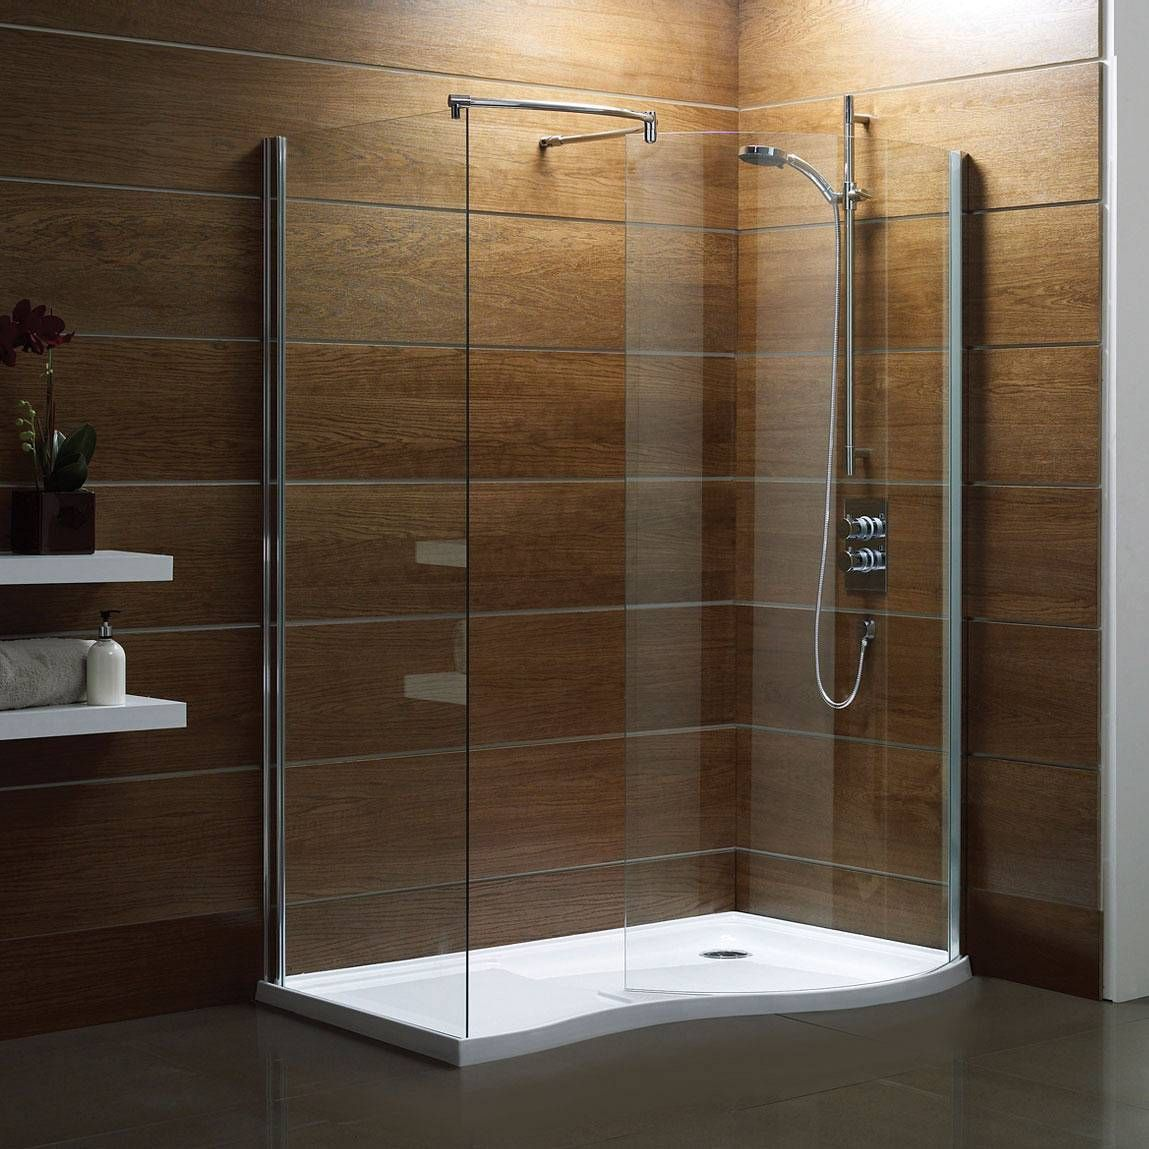 Wood showers wooden interior walk in shower design ideas for Bathroom enclosure designs